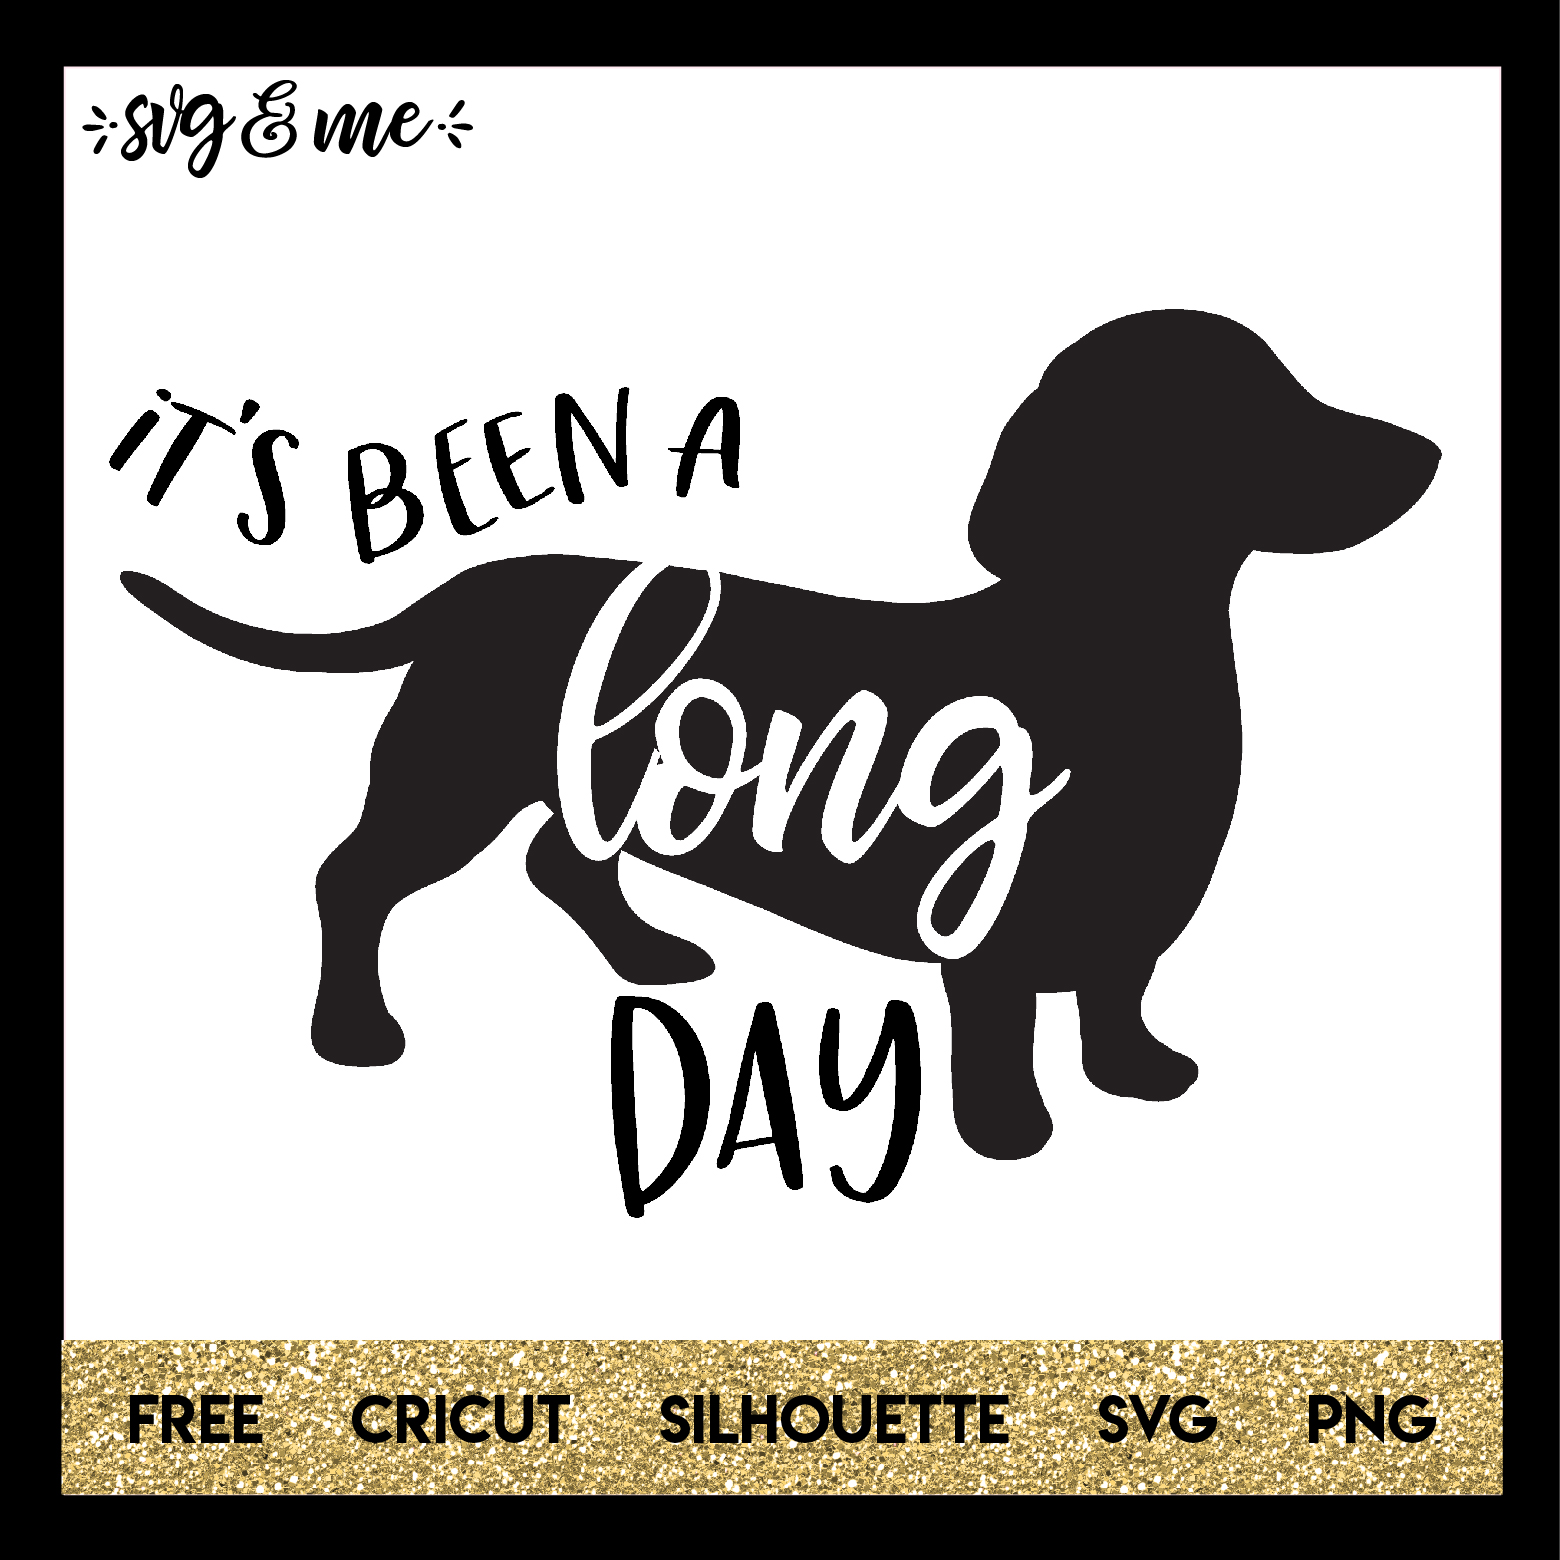 Download FREE SVG CUT FILE for Cricut, Silhouette - Long Day ...